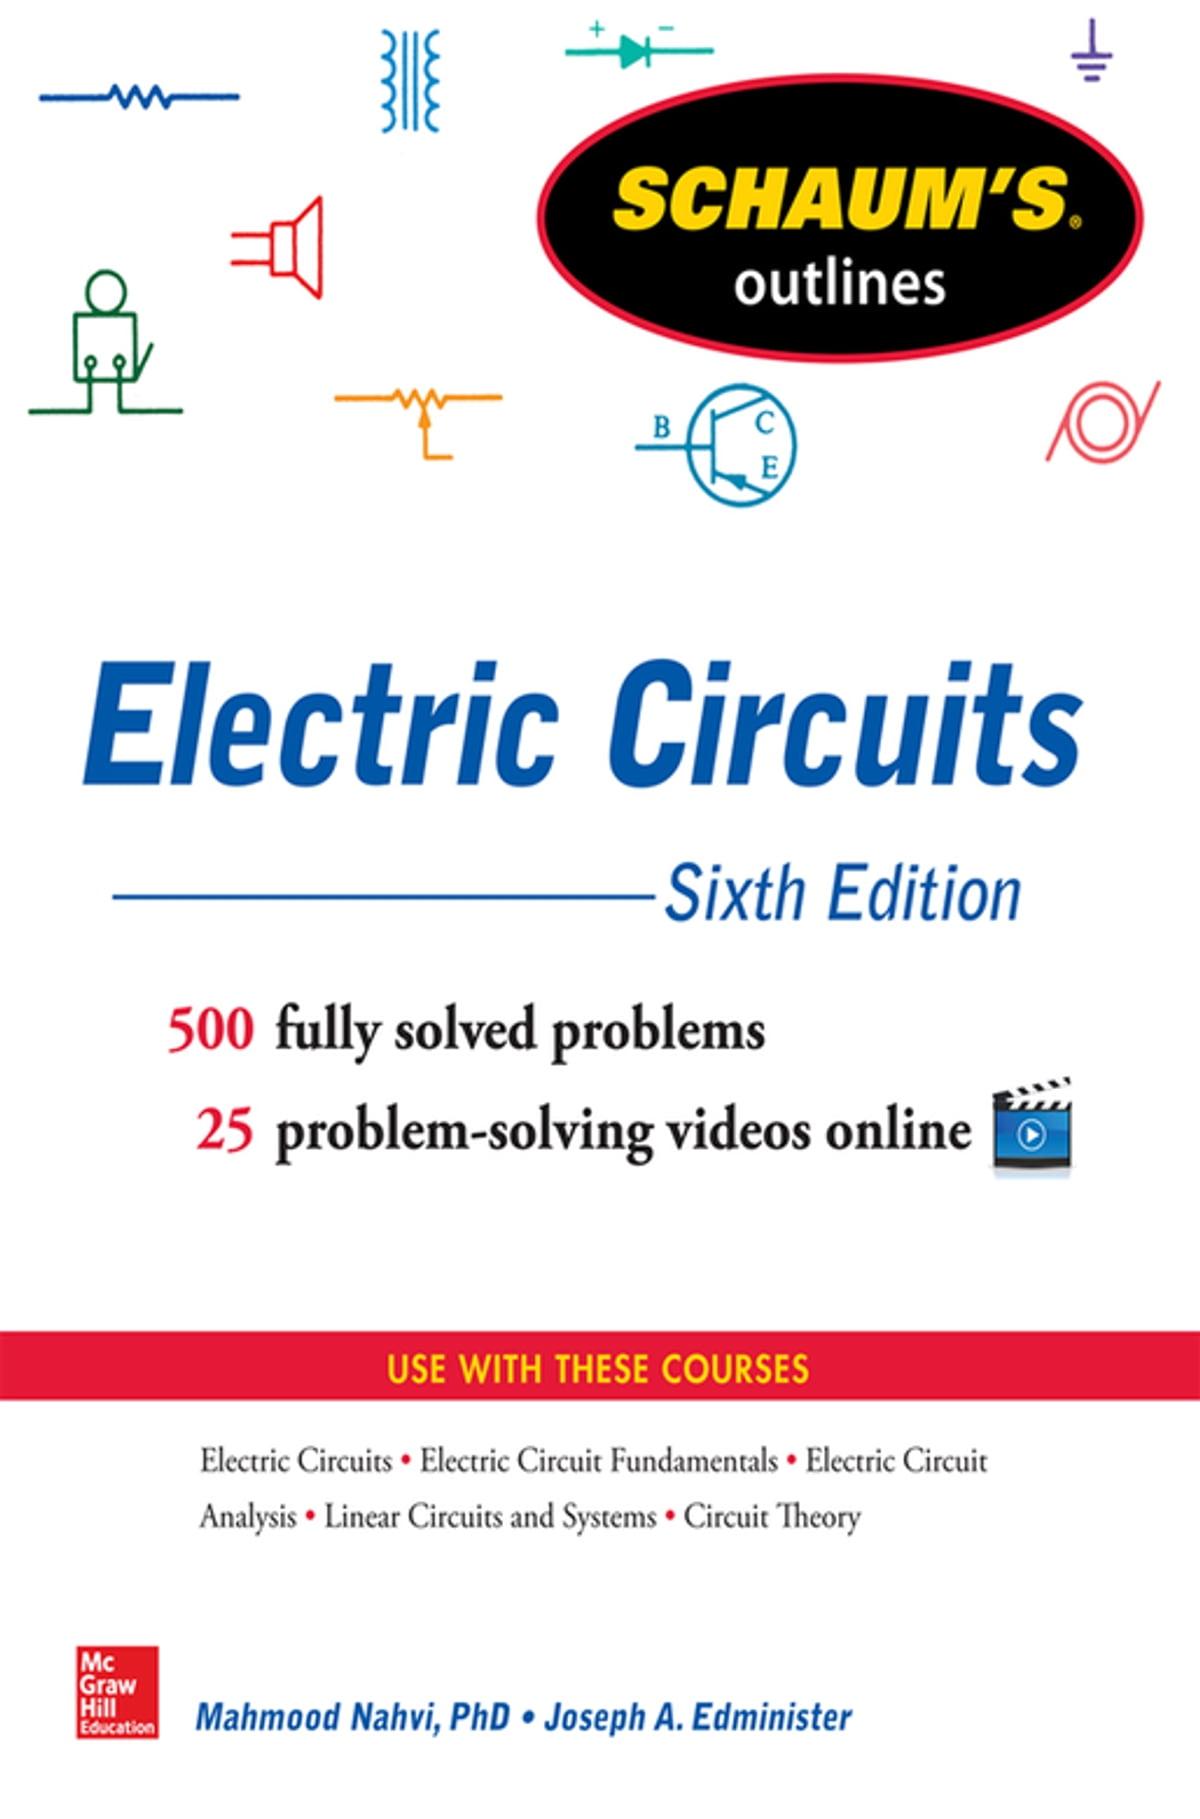 Schaum's Outline of Electric Circuits, 6th edition eBook by Joseph  Edminister - 9780071830447 | Rakuten Kobo